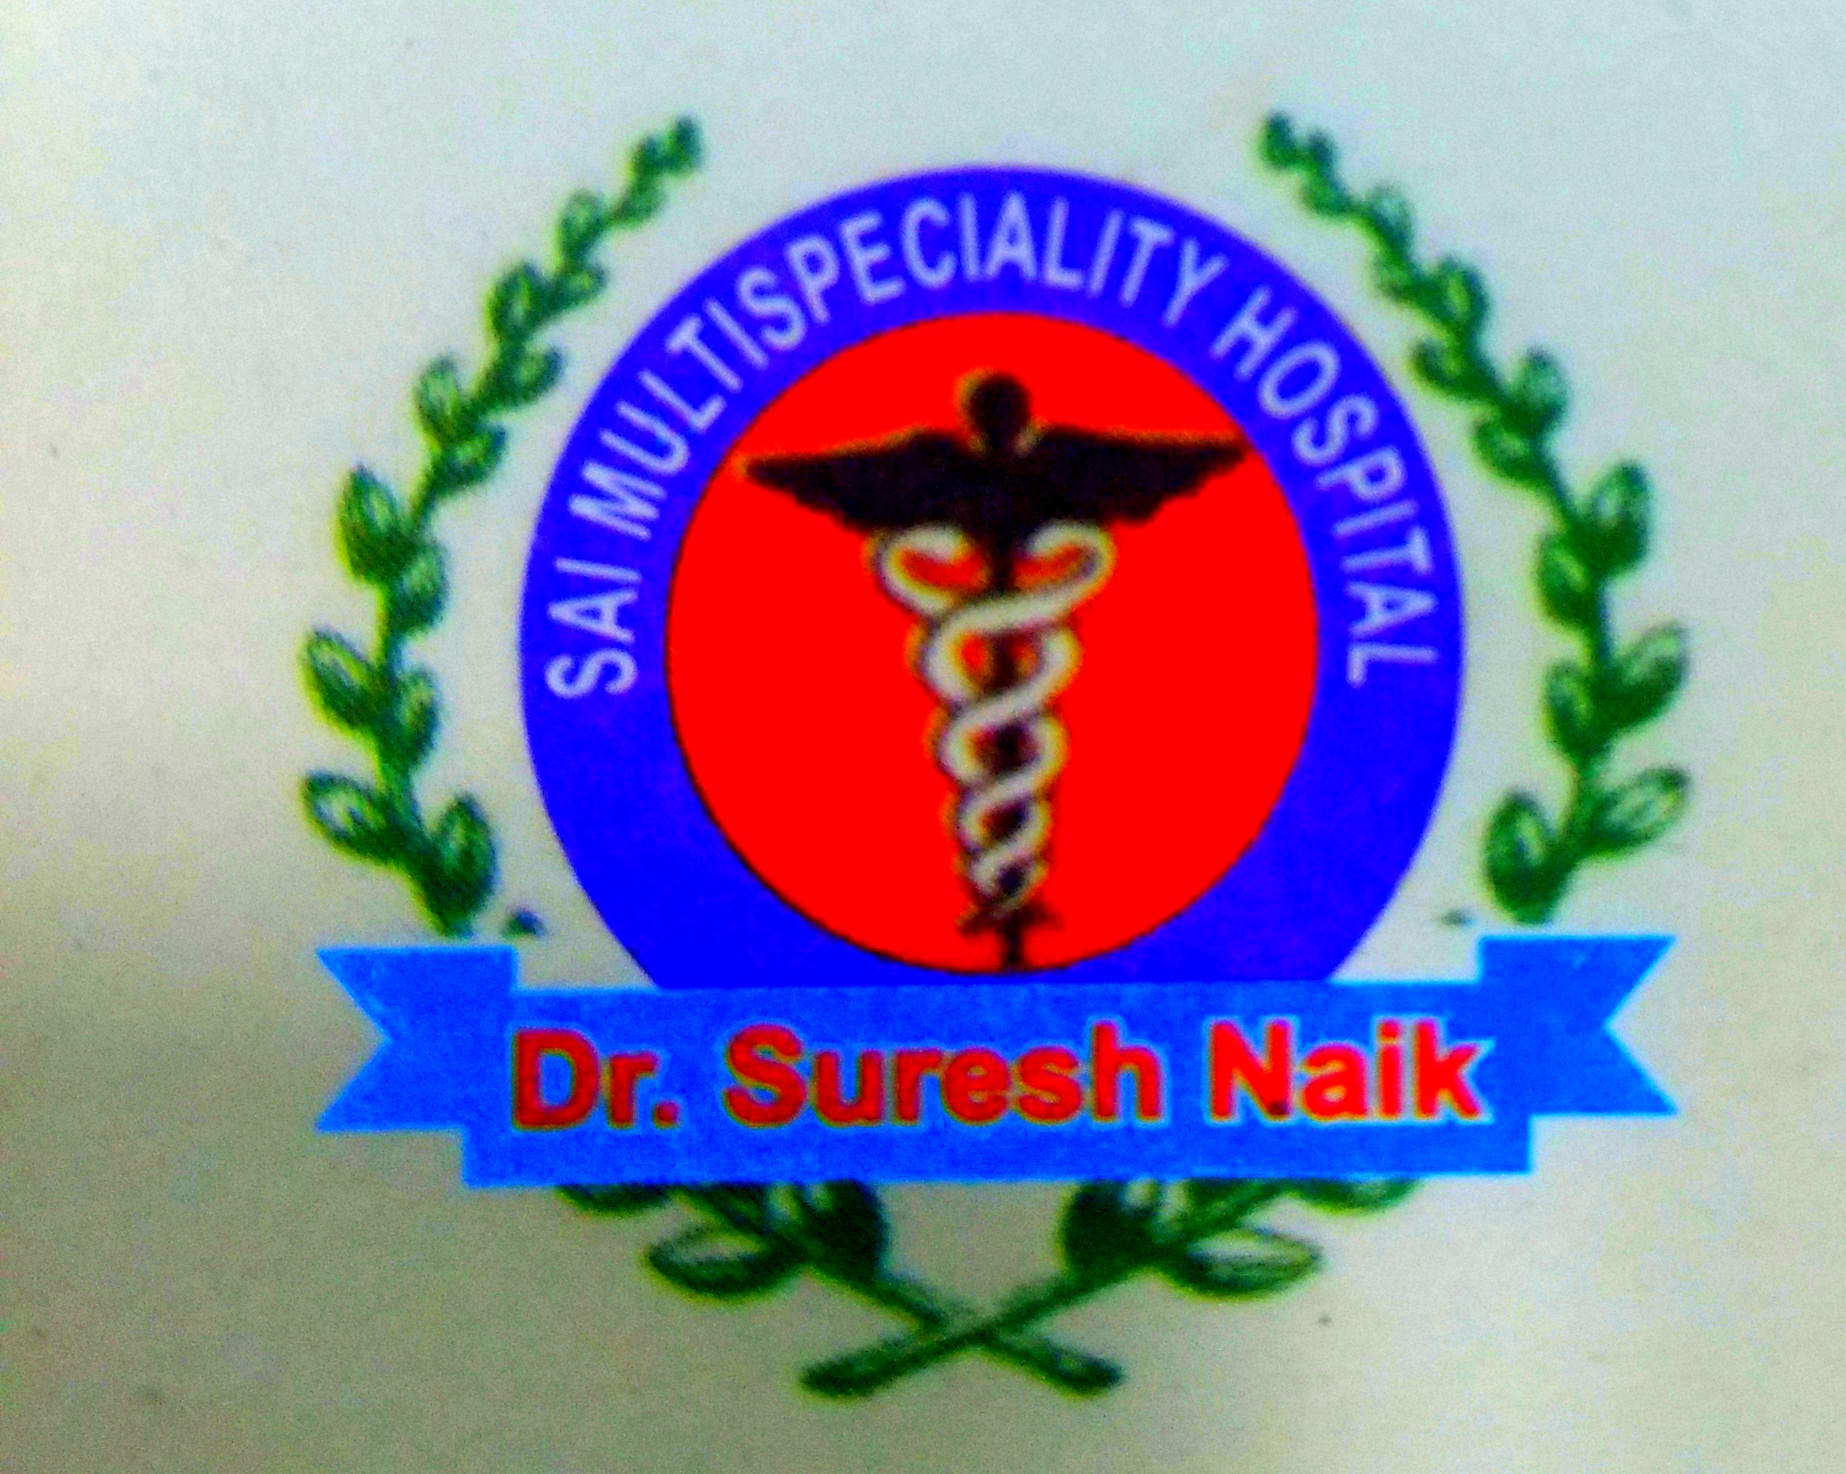 Sai Multispeciality Hospital